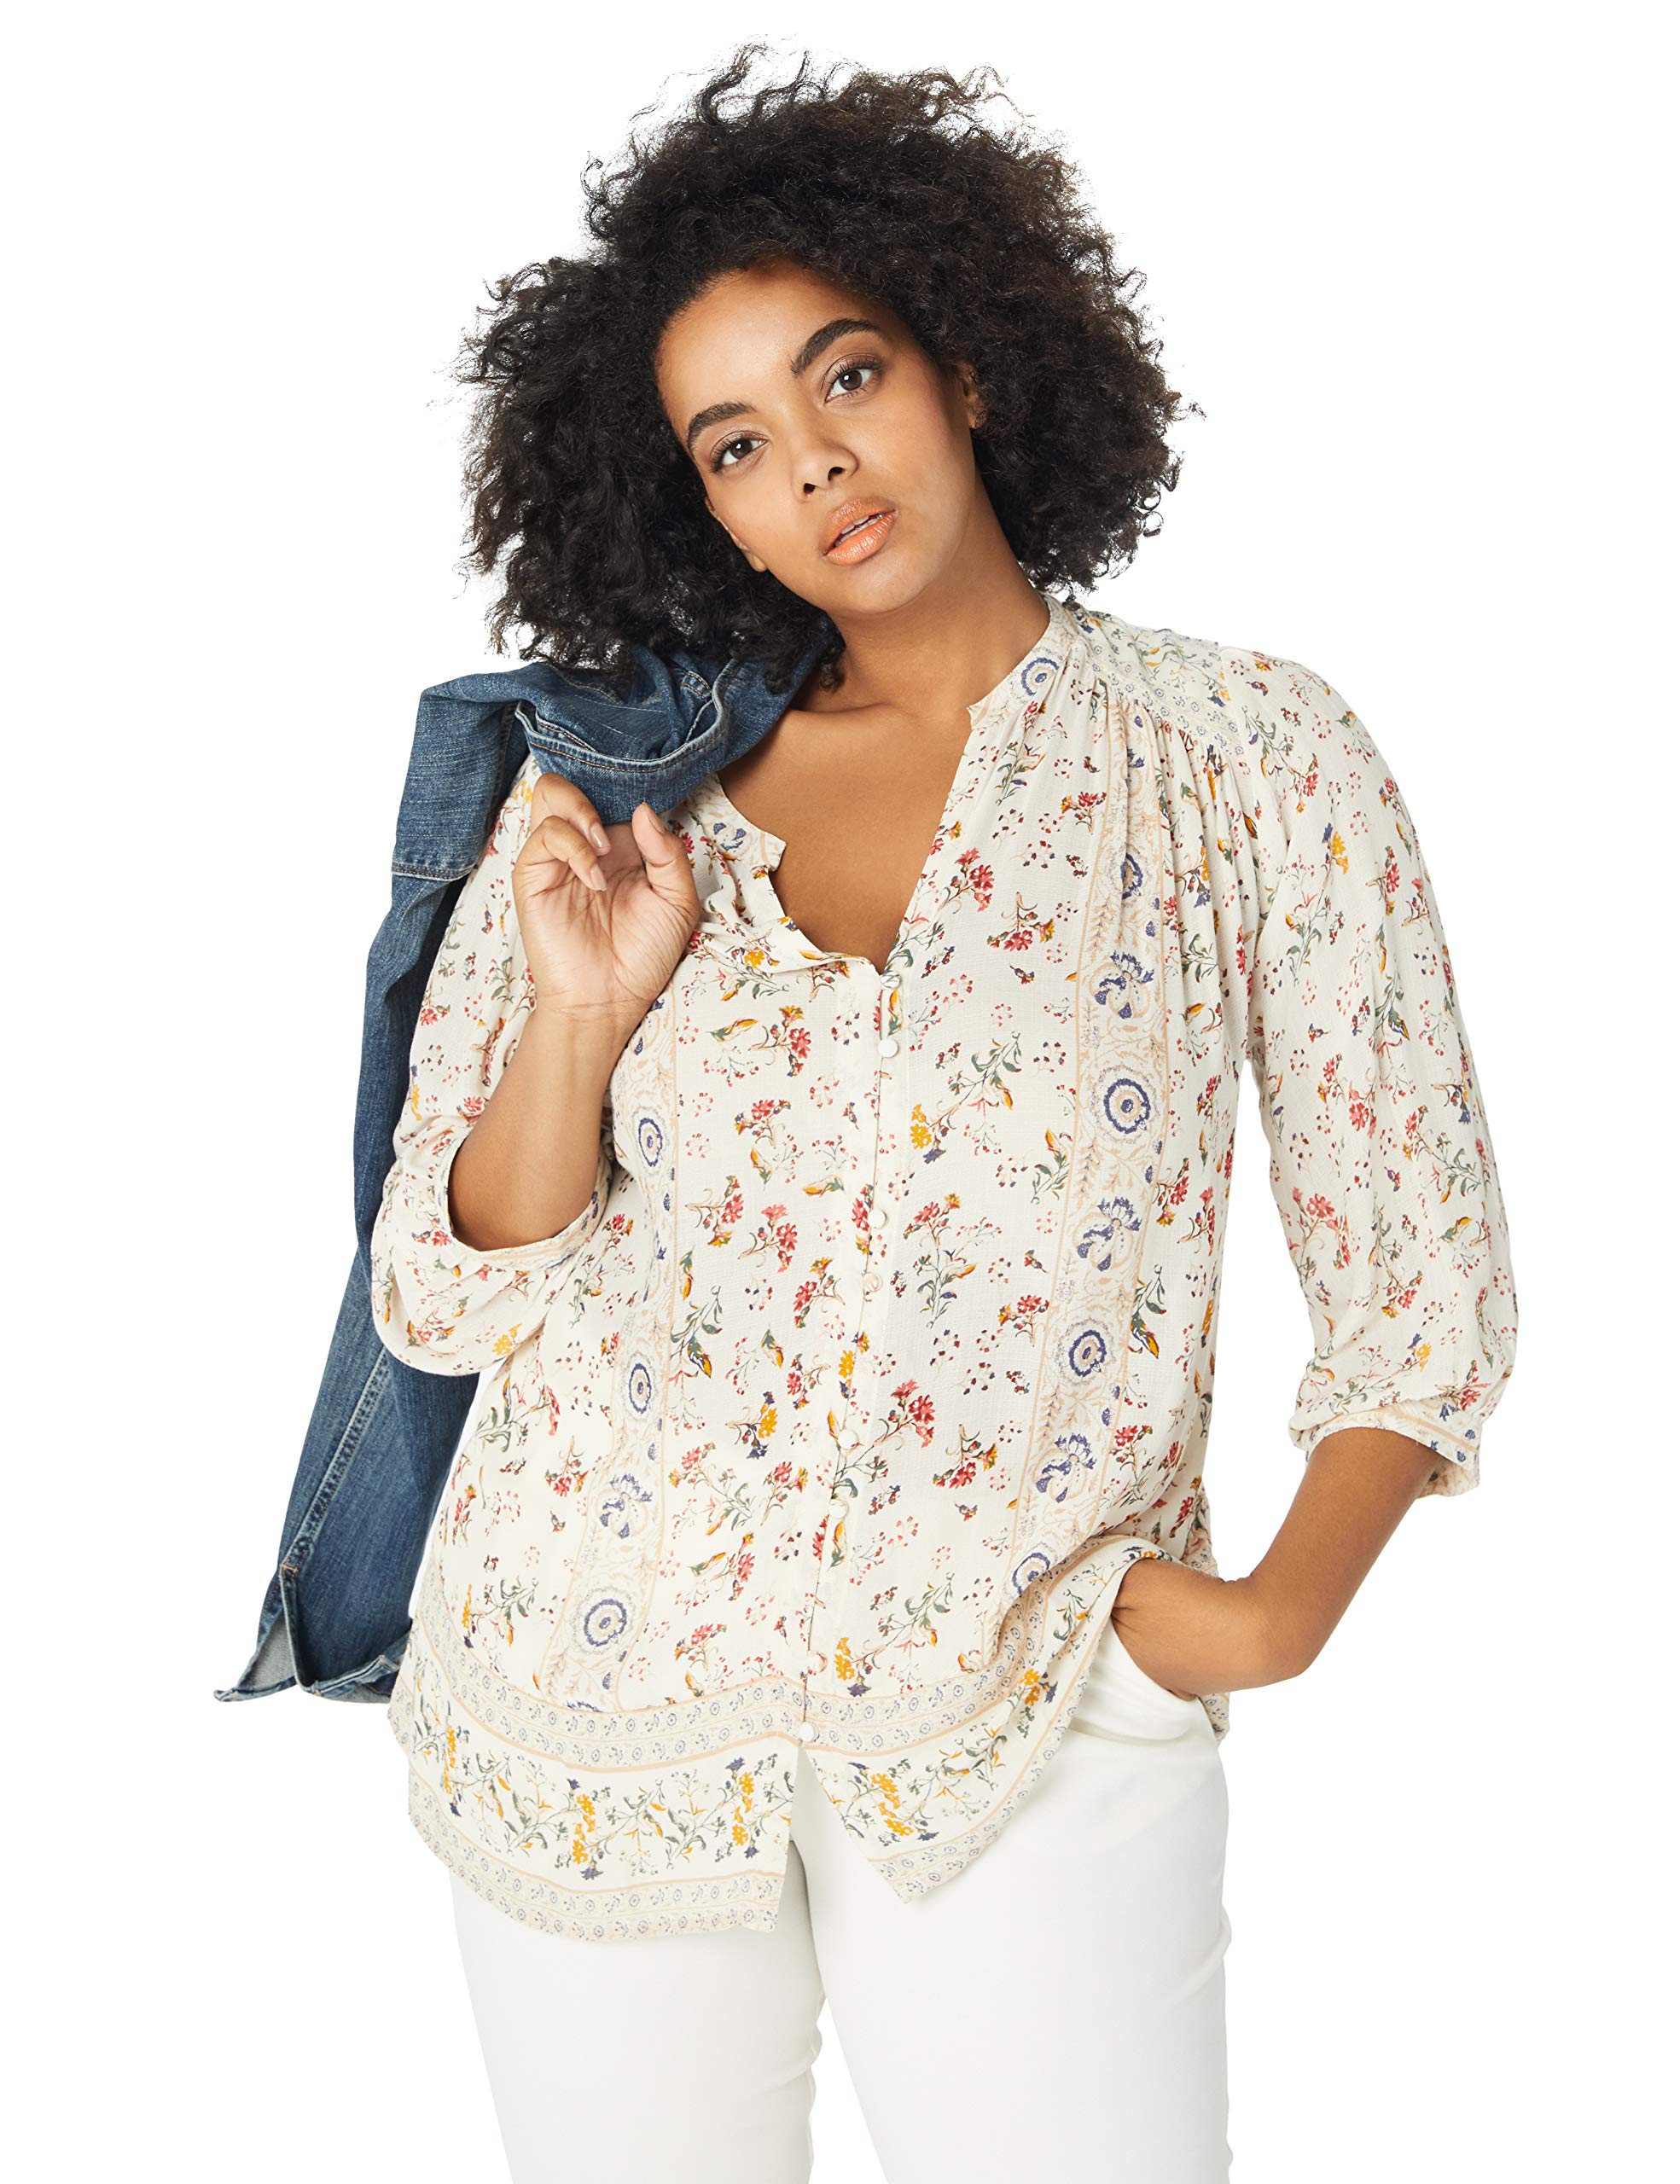 Lucky Brand Women's Plus Size Printed Peasant Top, Natural Multi, 2X by Lucky Brand (Image #1)